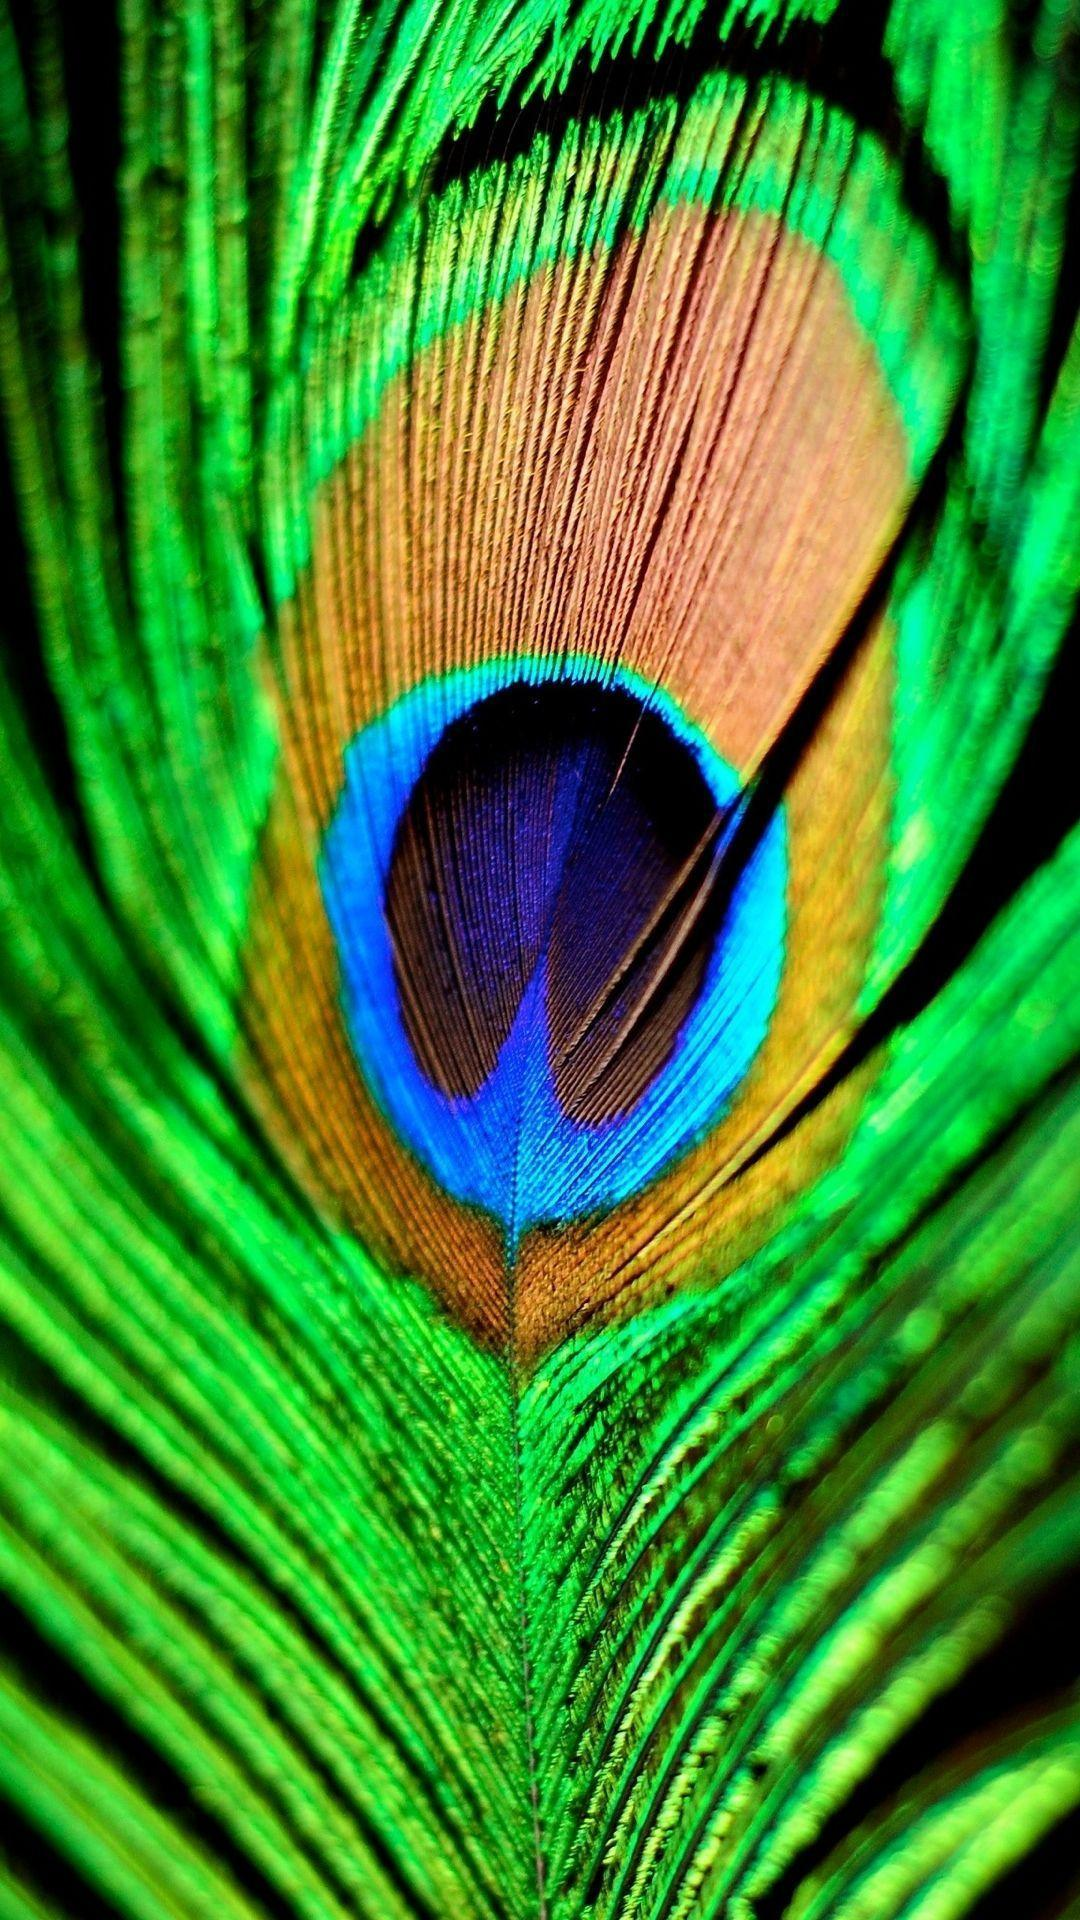 Wallpapers Of Peacock Feathers HD 2015 1080x1920